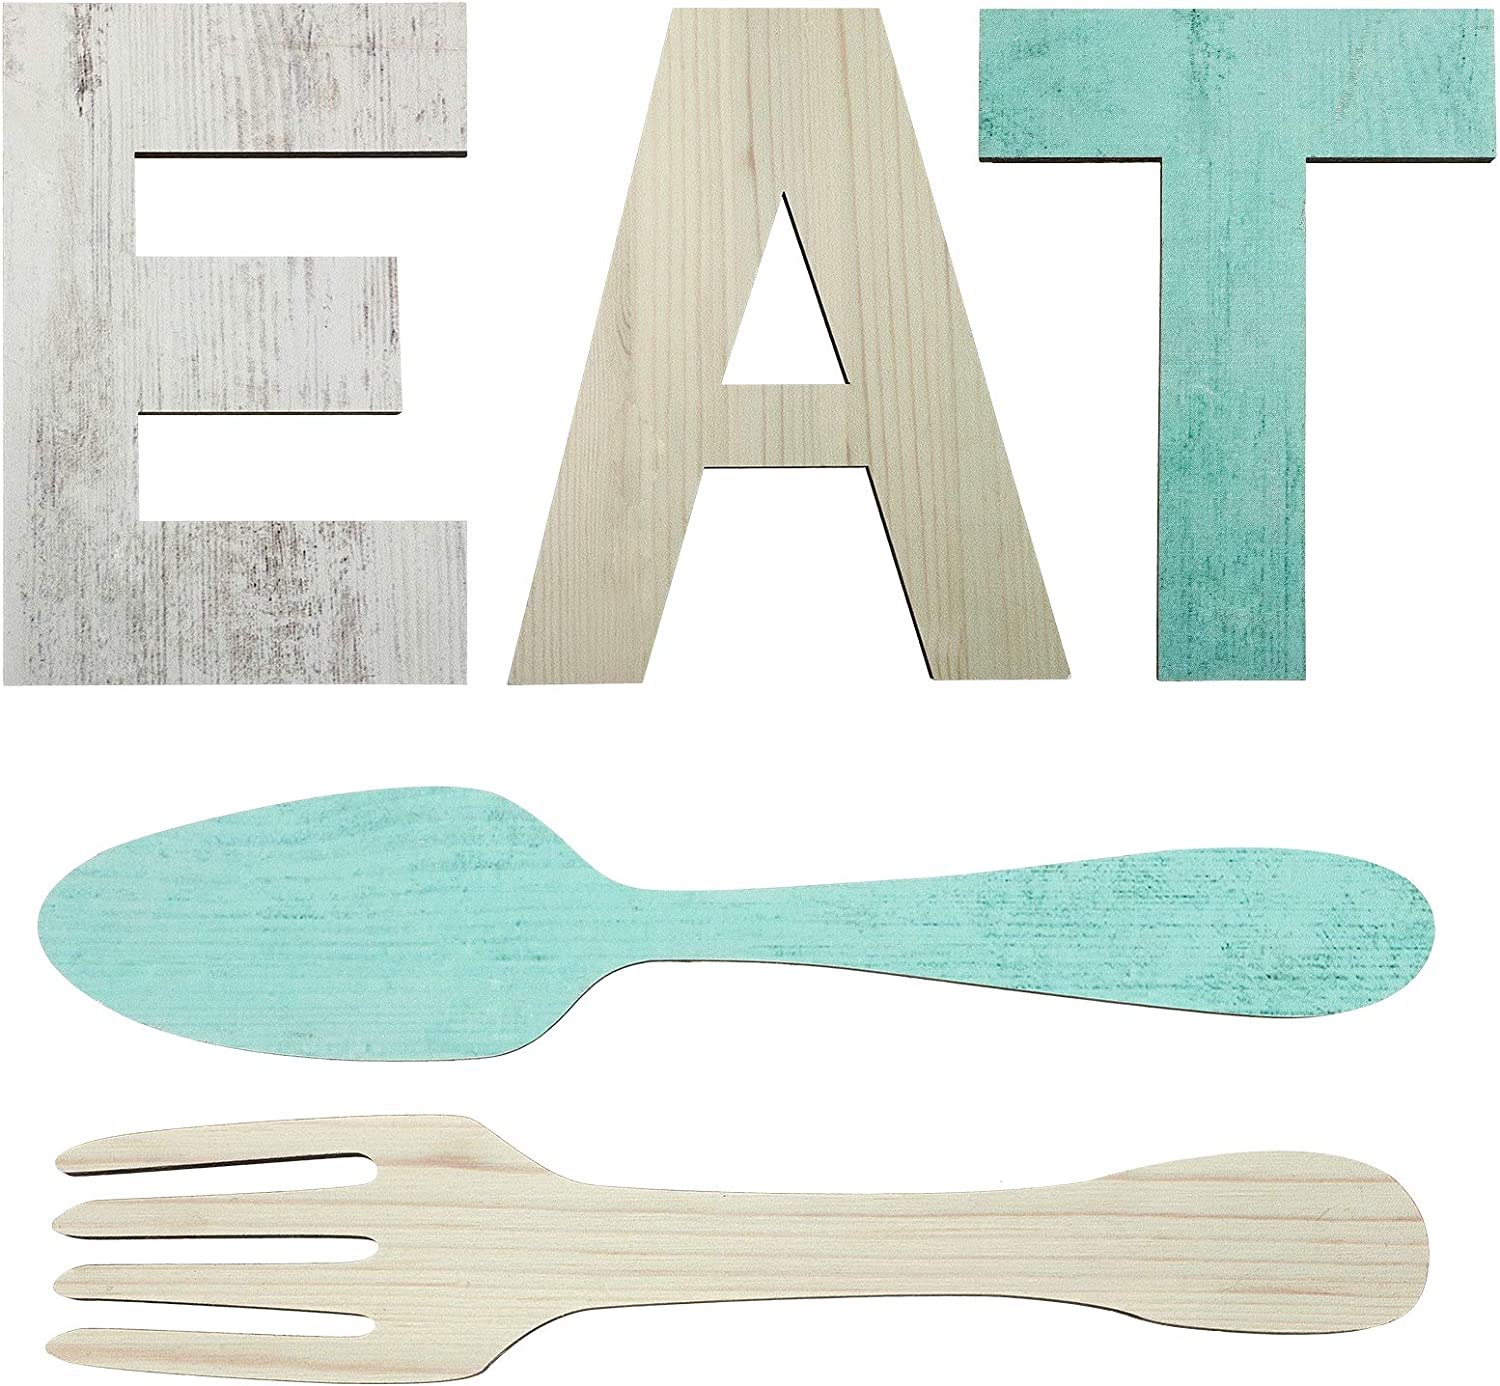 Set of EAT Sign, Fork and Spoon Wall Decor, Rustic Wood Eat Decoration, Cute Eat Letters for Kitchen and Home, Decorative Hanging Wooden Letters, Country Wall Art, Dining Room (Classic Color)